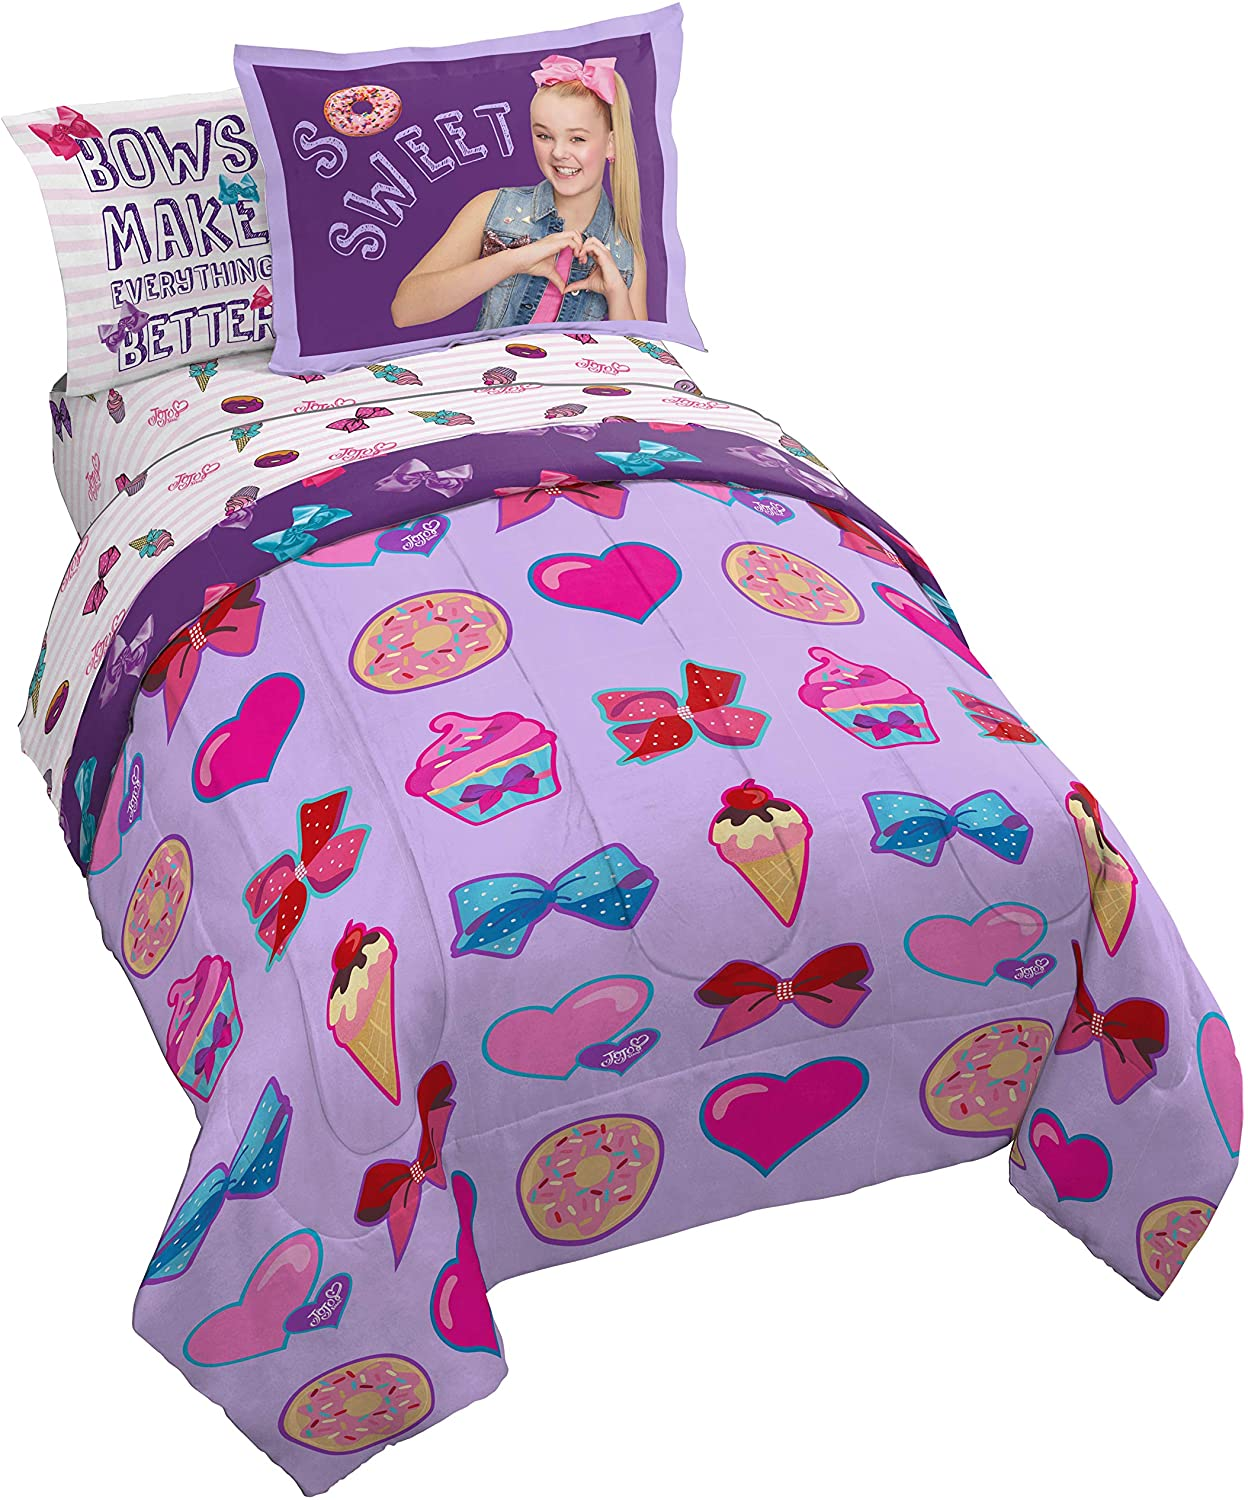 Jay Franco Nickelodeon JoJo Siwa Sweet Life 7 Piece Full Bed Set - Includes Reversible Comforter & Sheet Set Bedding - Super Soft Fade Resistant Microfiber (Official Nickelodeon Product)